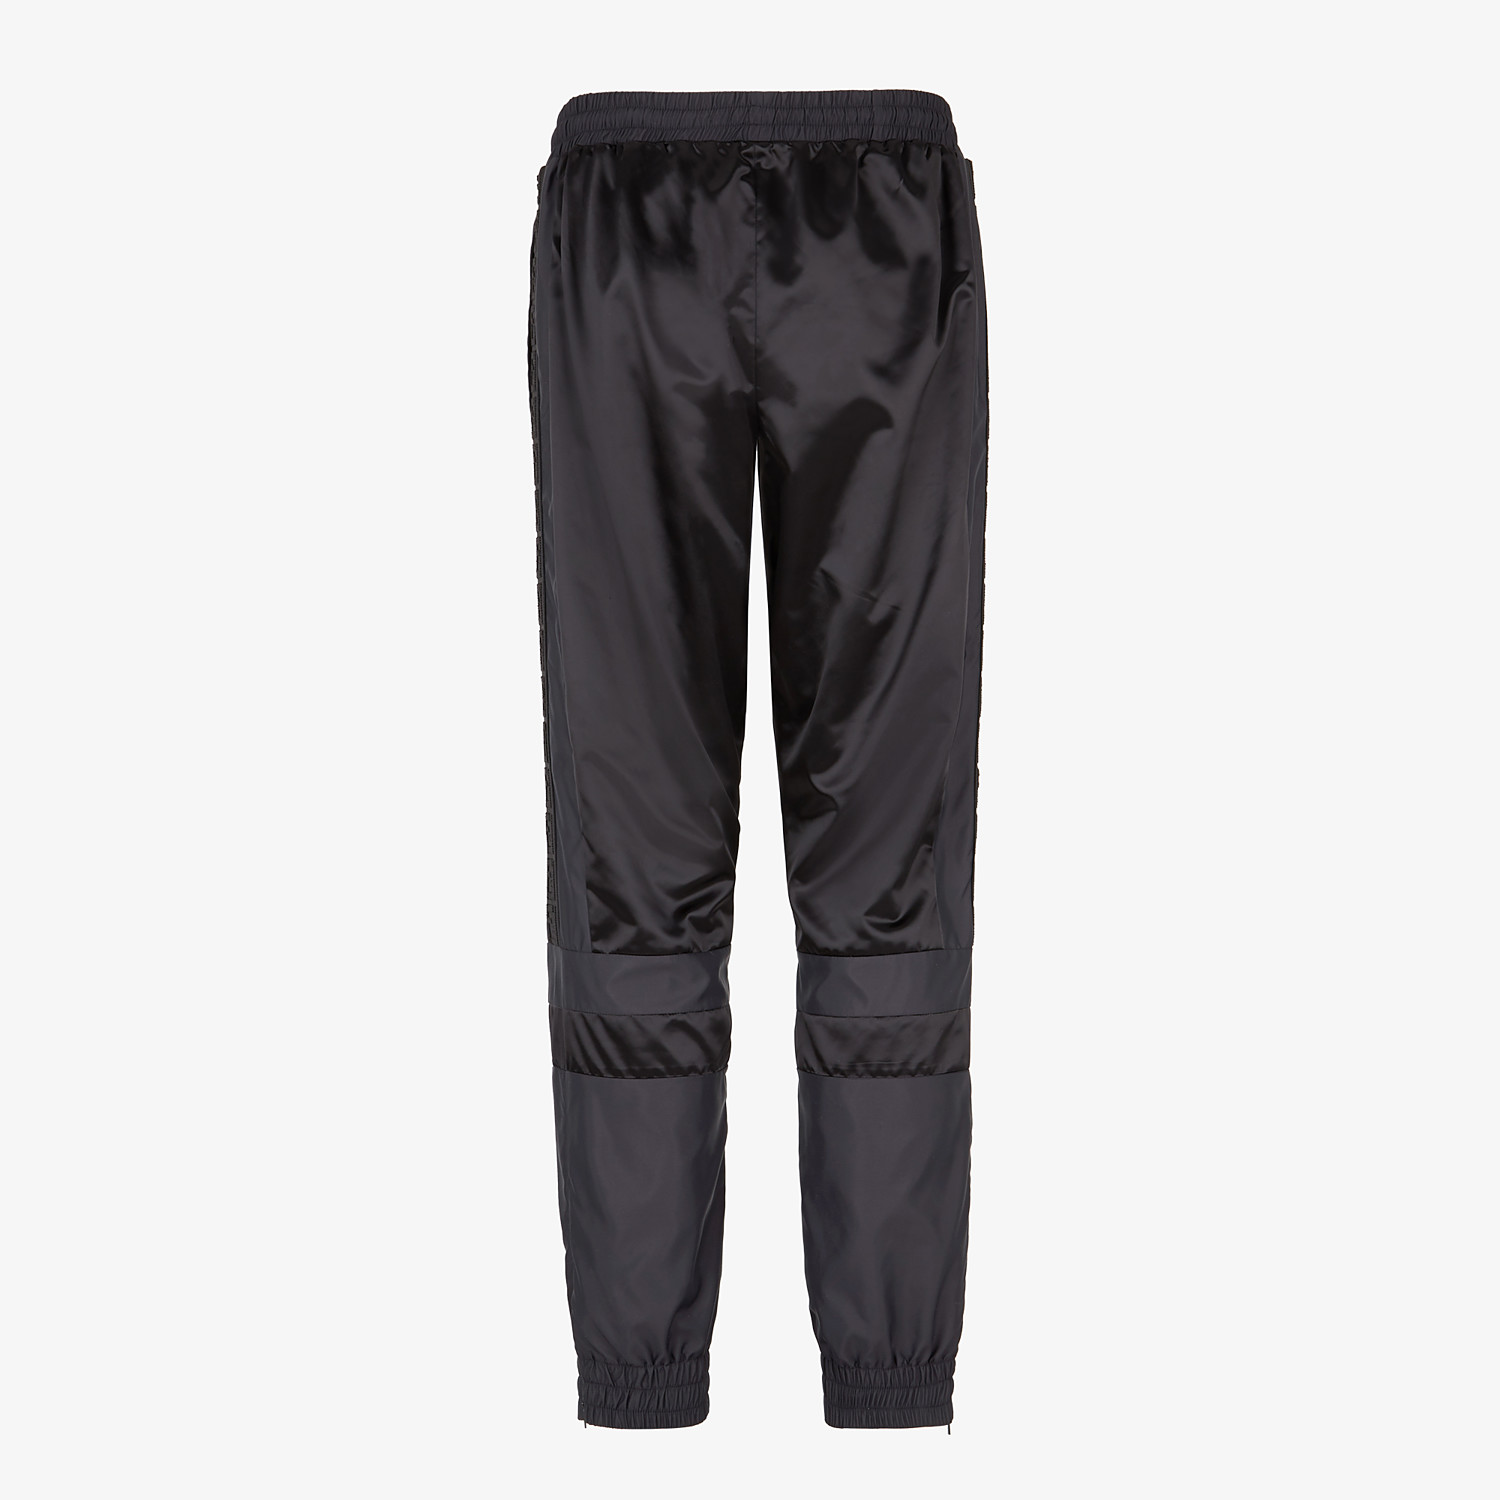 FENDI PANTS - Black tech satin pants - view 2 detail